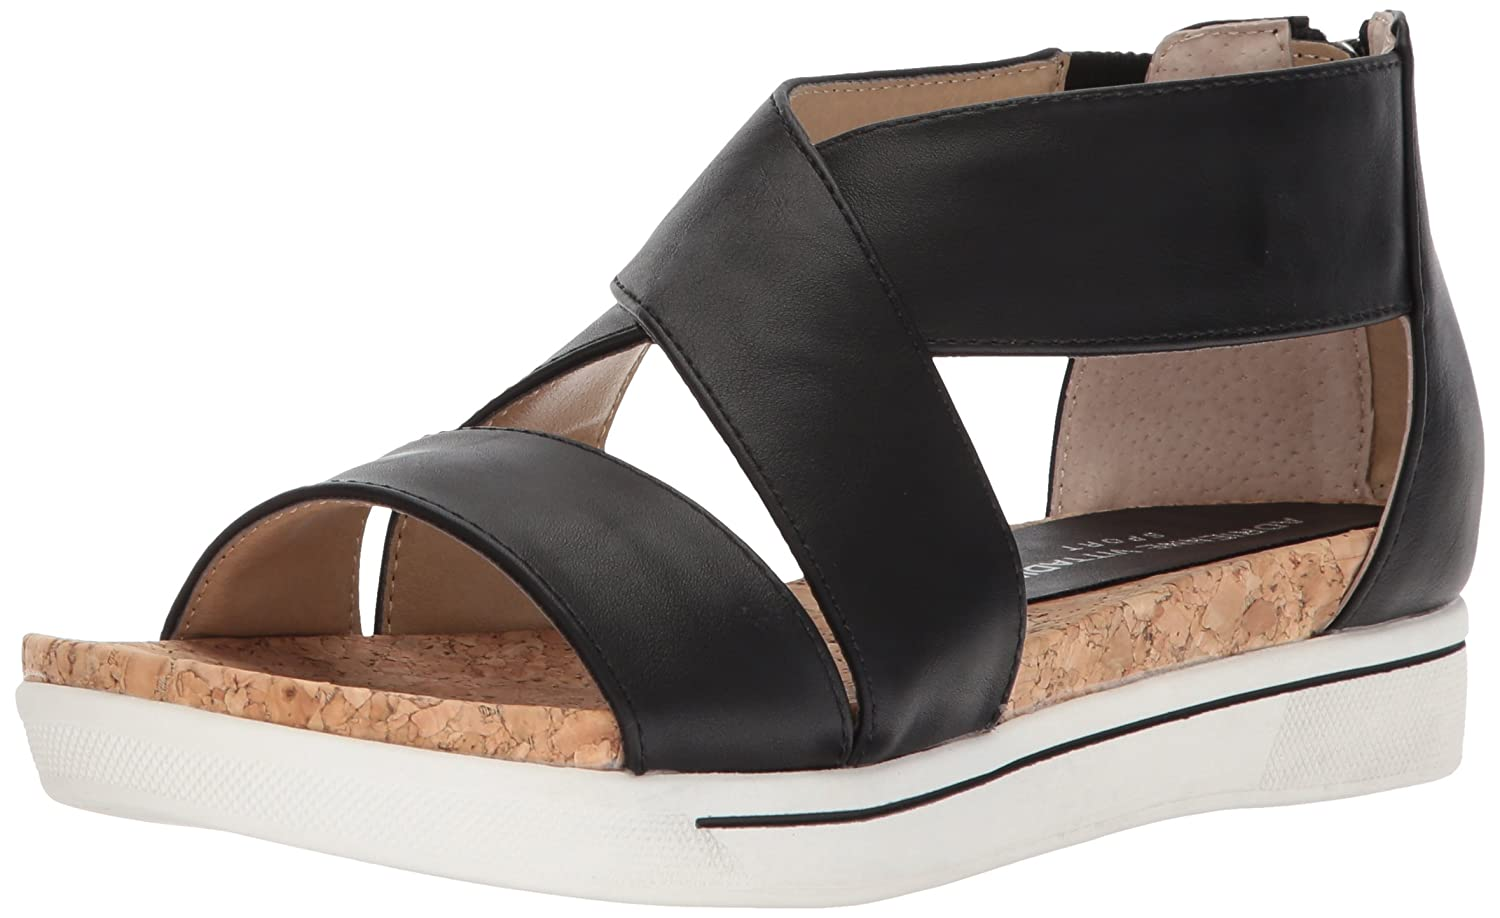 ADRIENNE VITTADINI Footwear Women's Claud Sandal B01MU0LO7K 6 B(M) US|Smooth Black